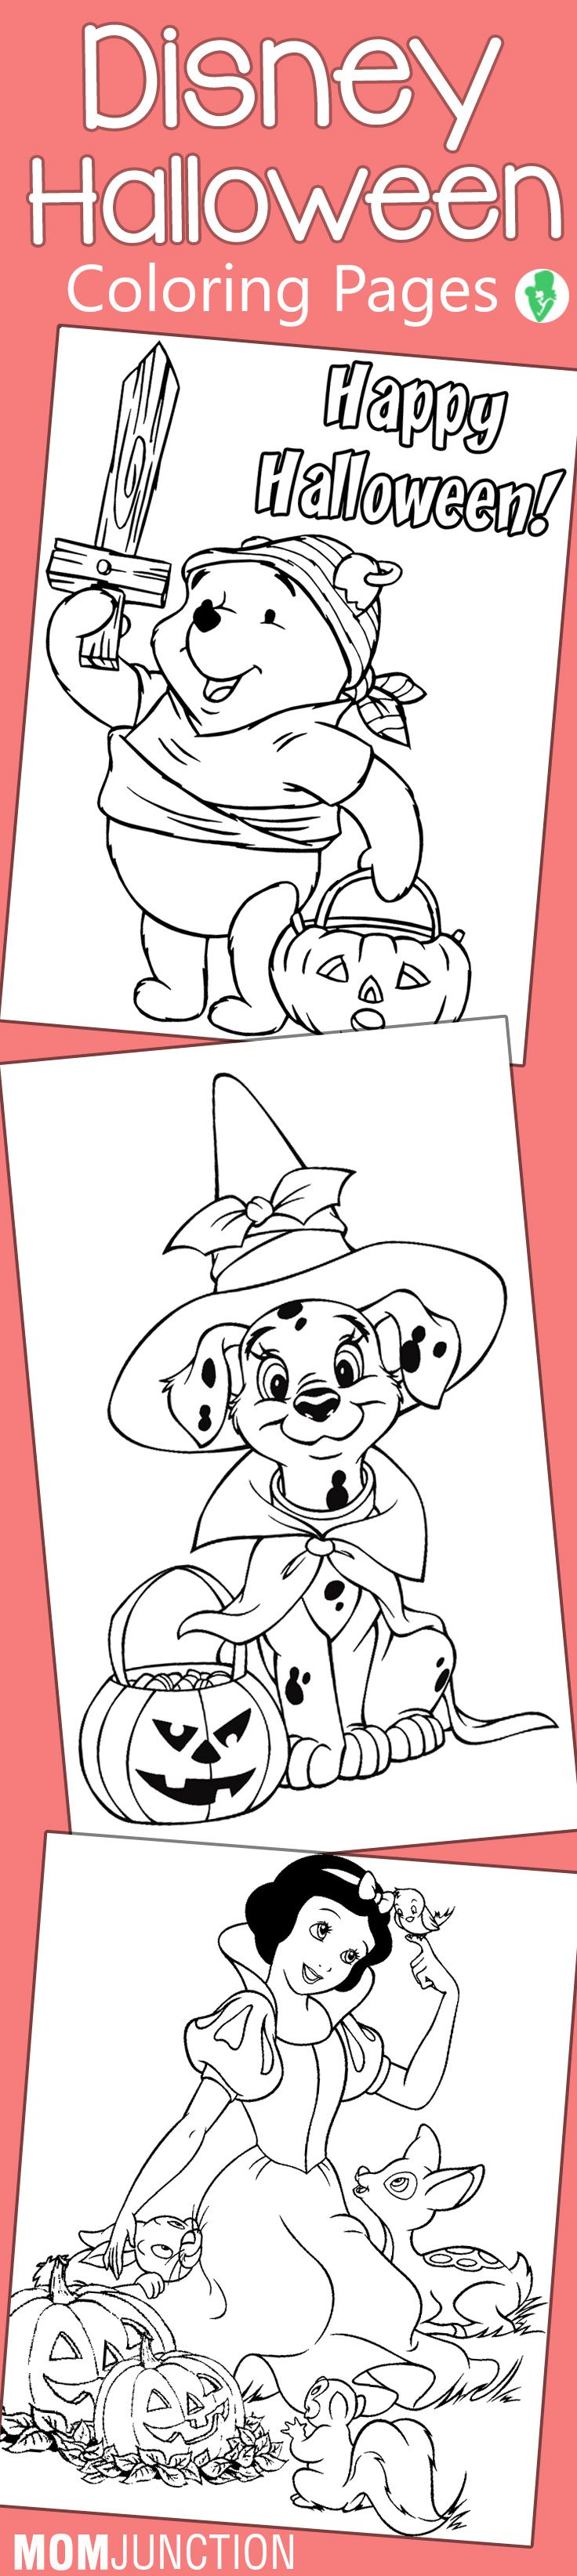 Color book party mn - 10 Amazing Disney Halloween Coloring Pages For Your Little Ones